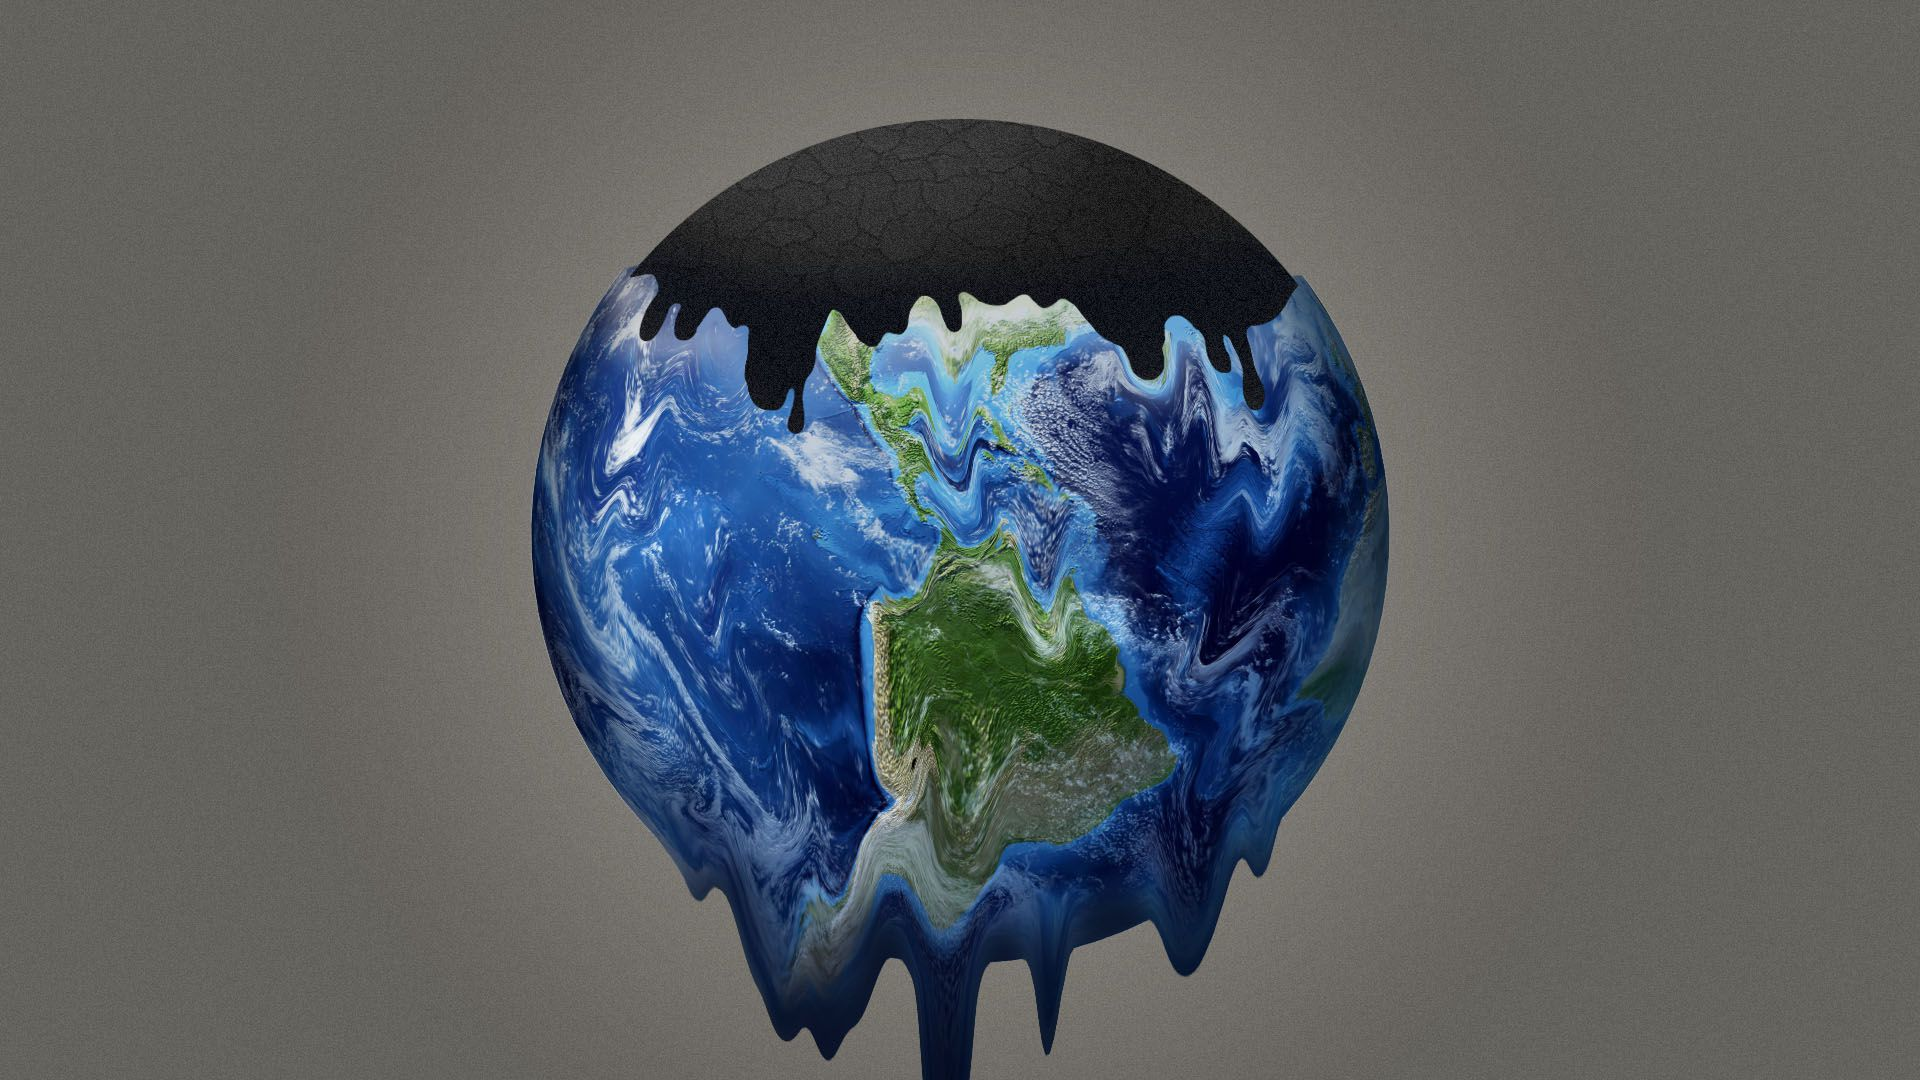 In this illustration, the earth is melting